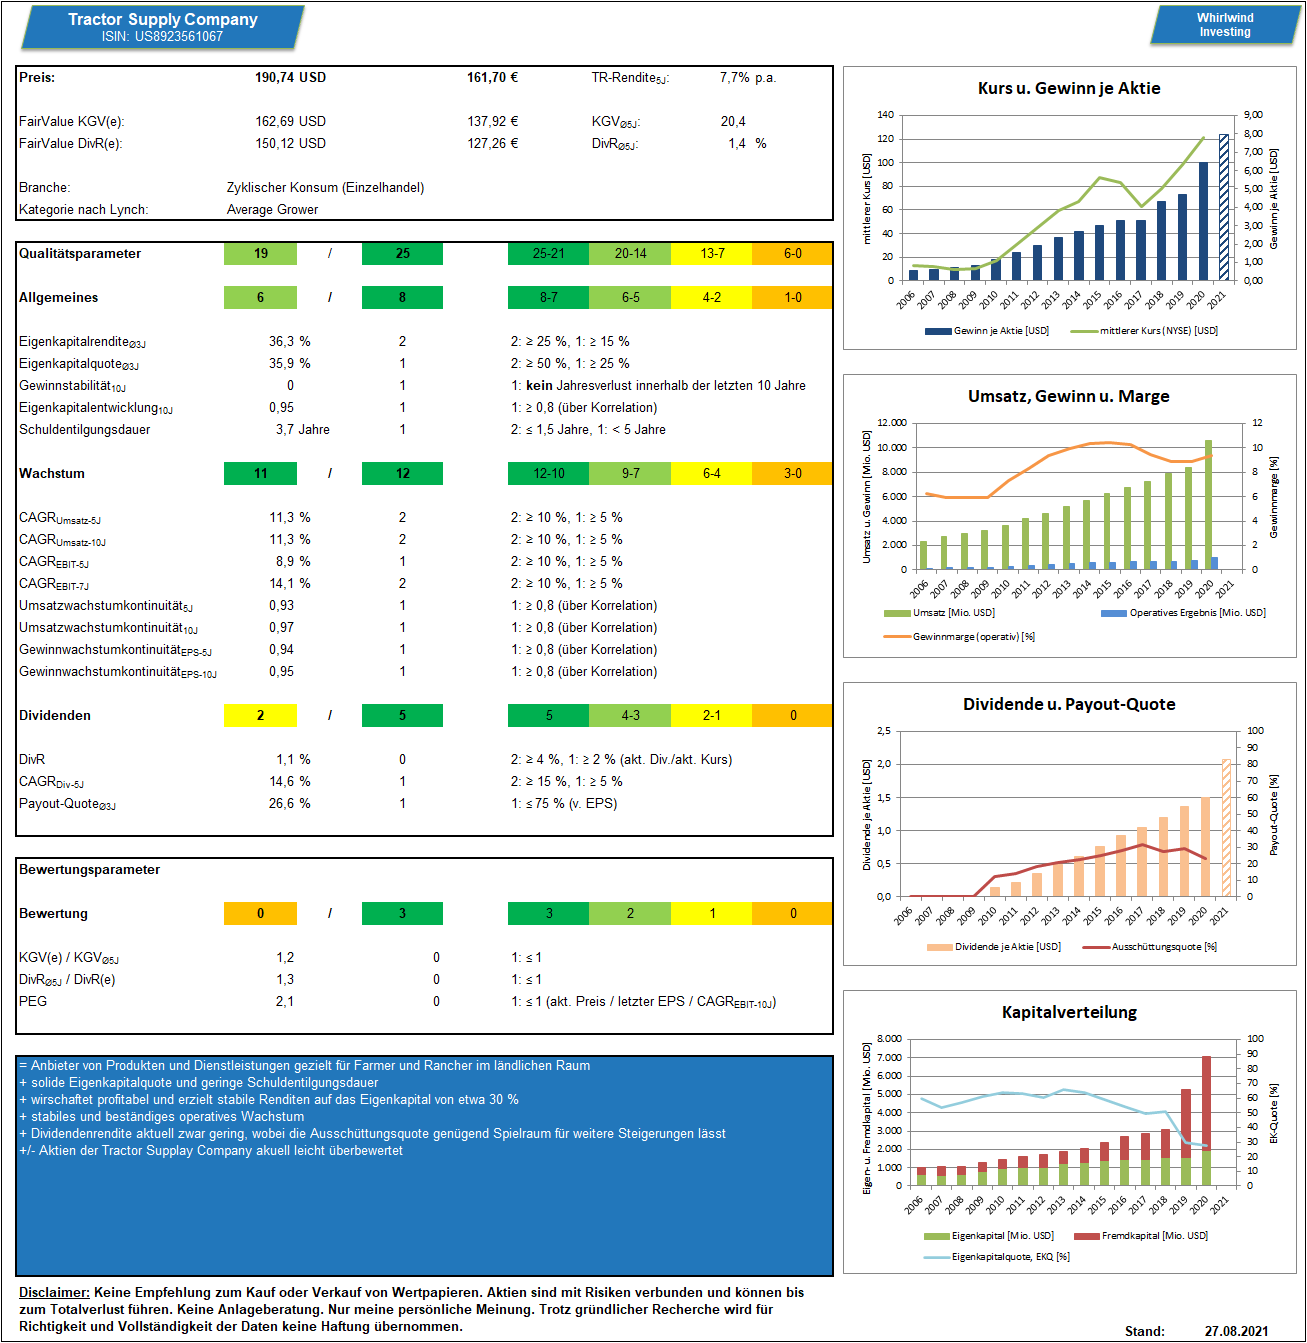 Tractor Supply Company - Dashboard, Stand 27.08.2021 - Whirlwind-Investing